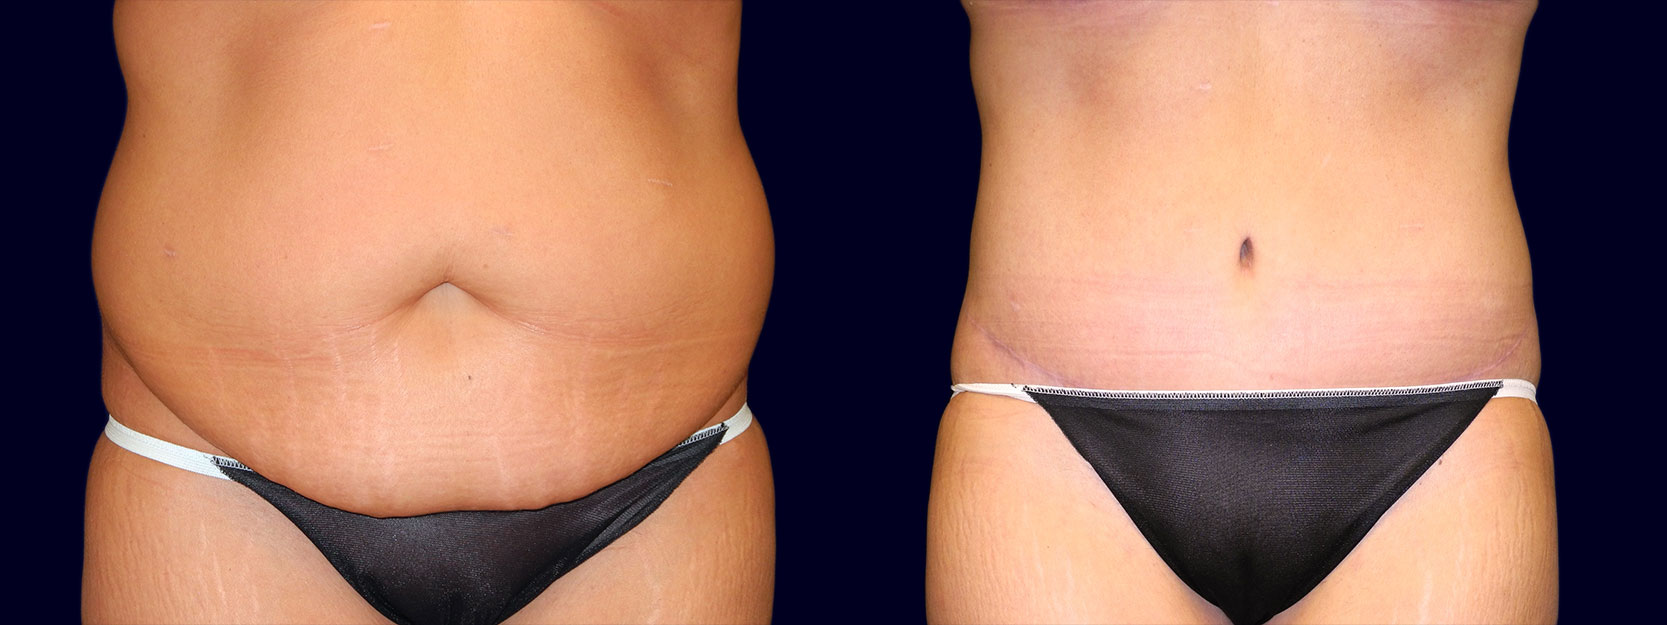 Frontal View - Tummy Tuck After Weight Loss